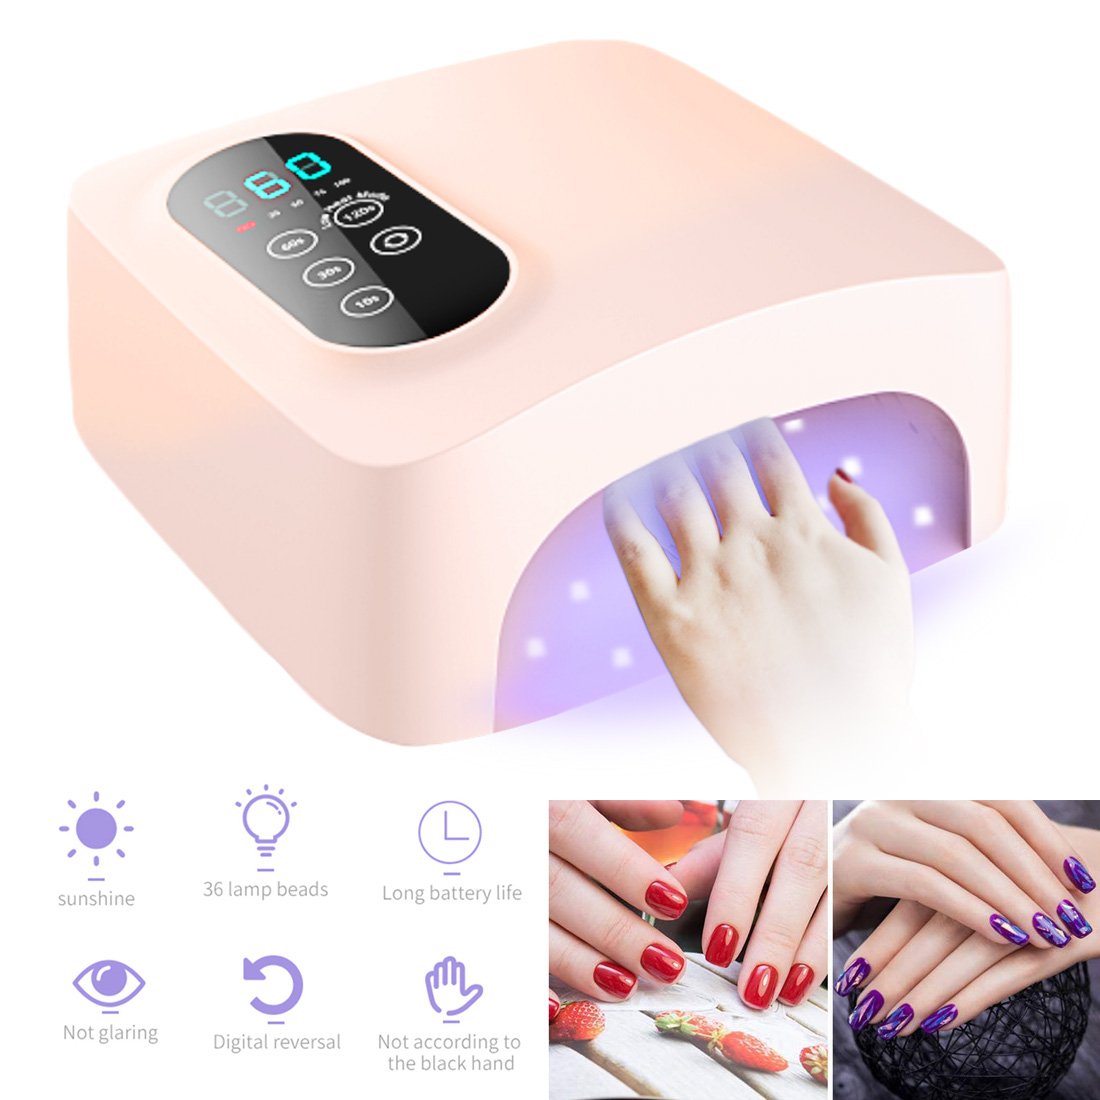 High-end Nail professional New wireless rechargeable nail lamp USB UV LED Nail Lamp Gel  Polish Dryer Light Curing Lamp Faster